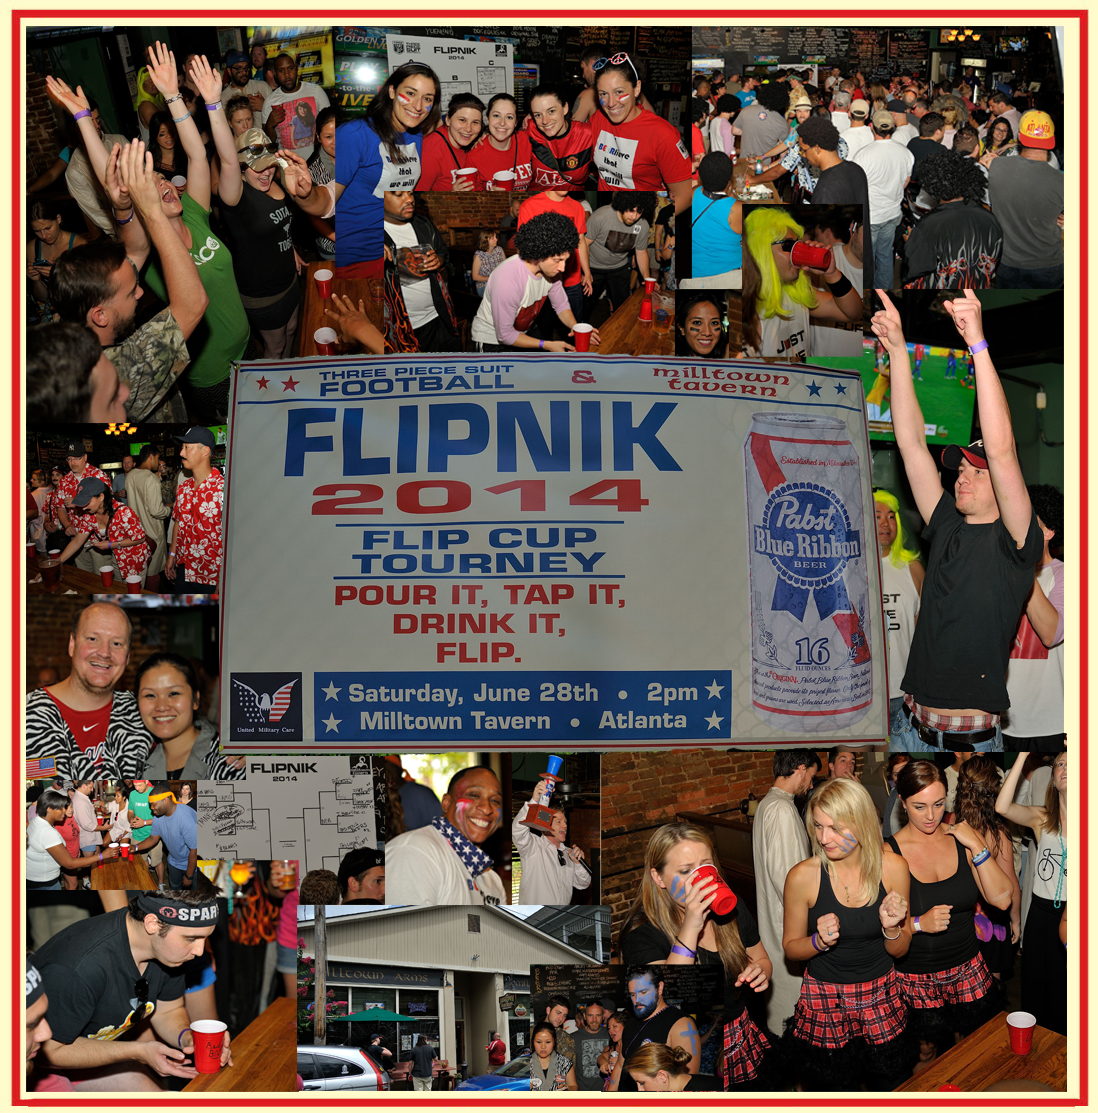 Highlights from last year's Flipnik!